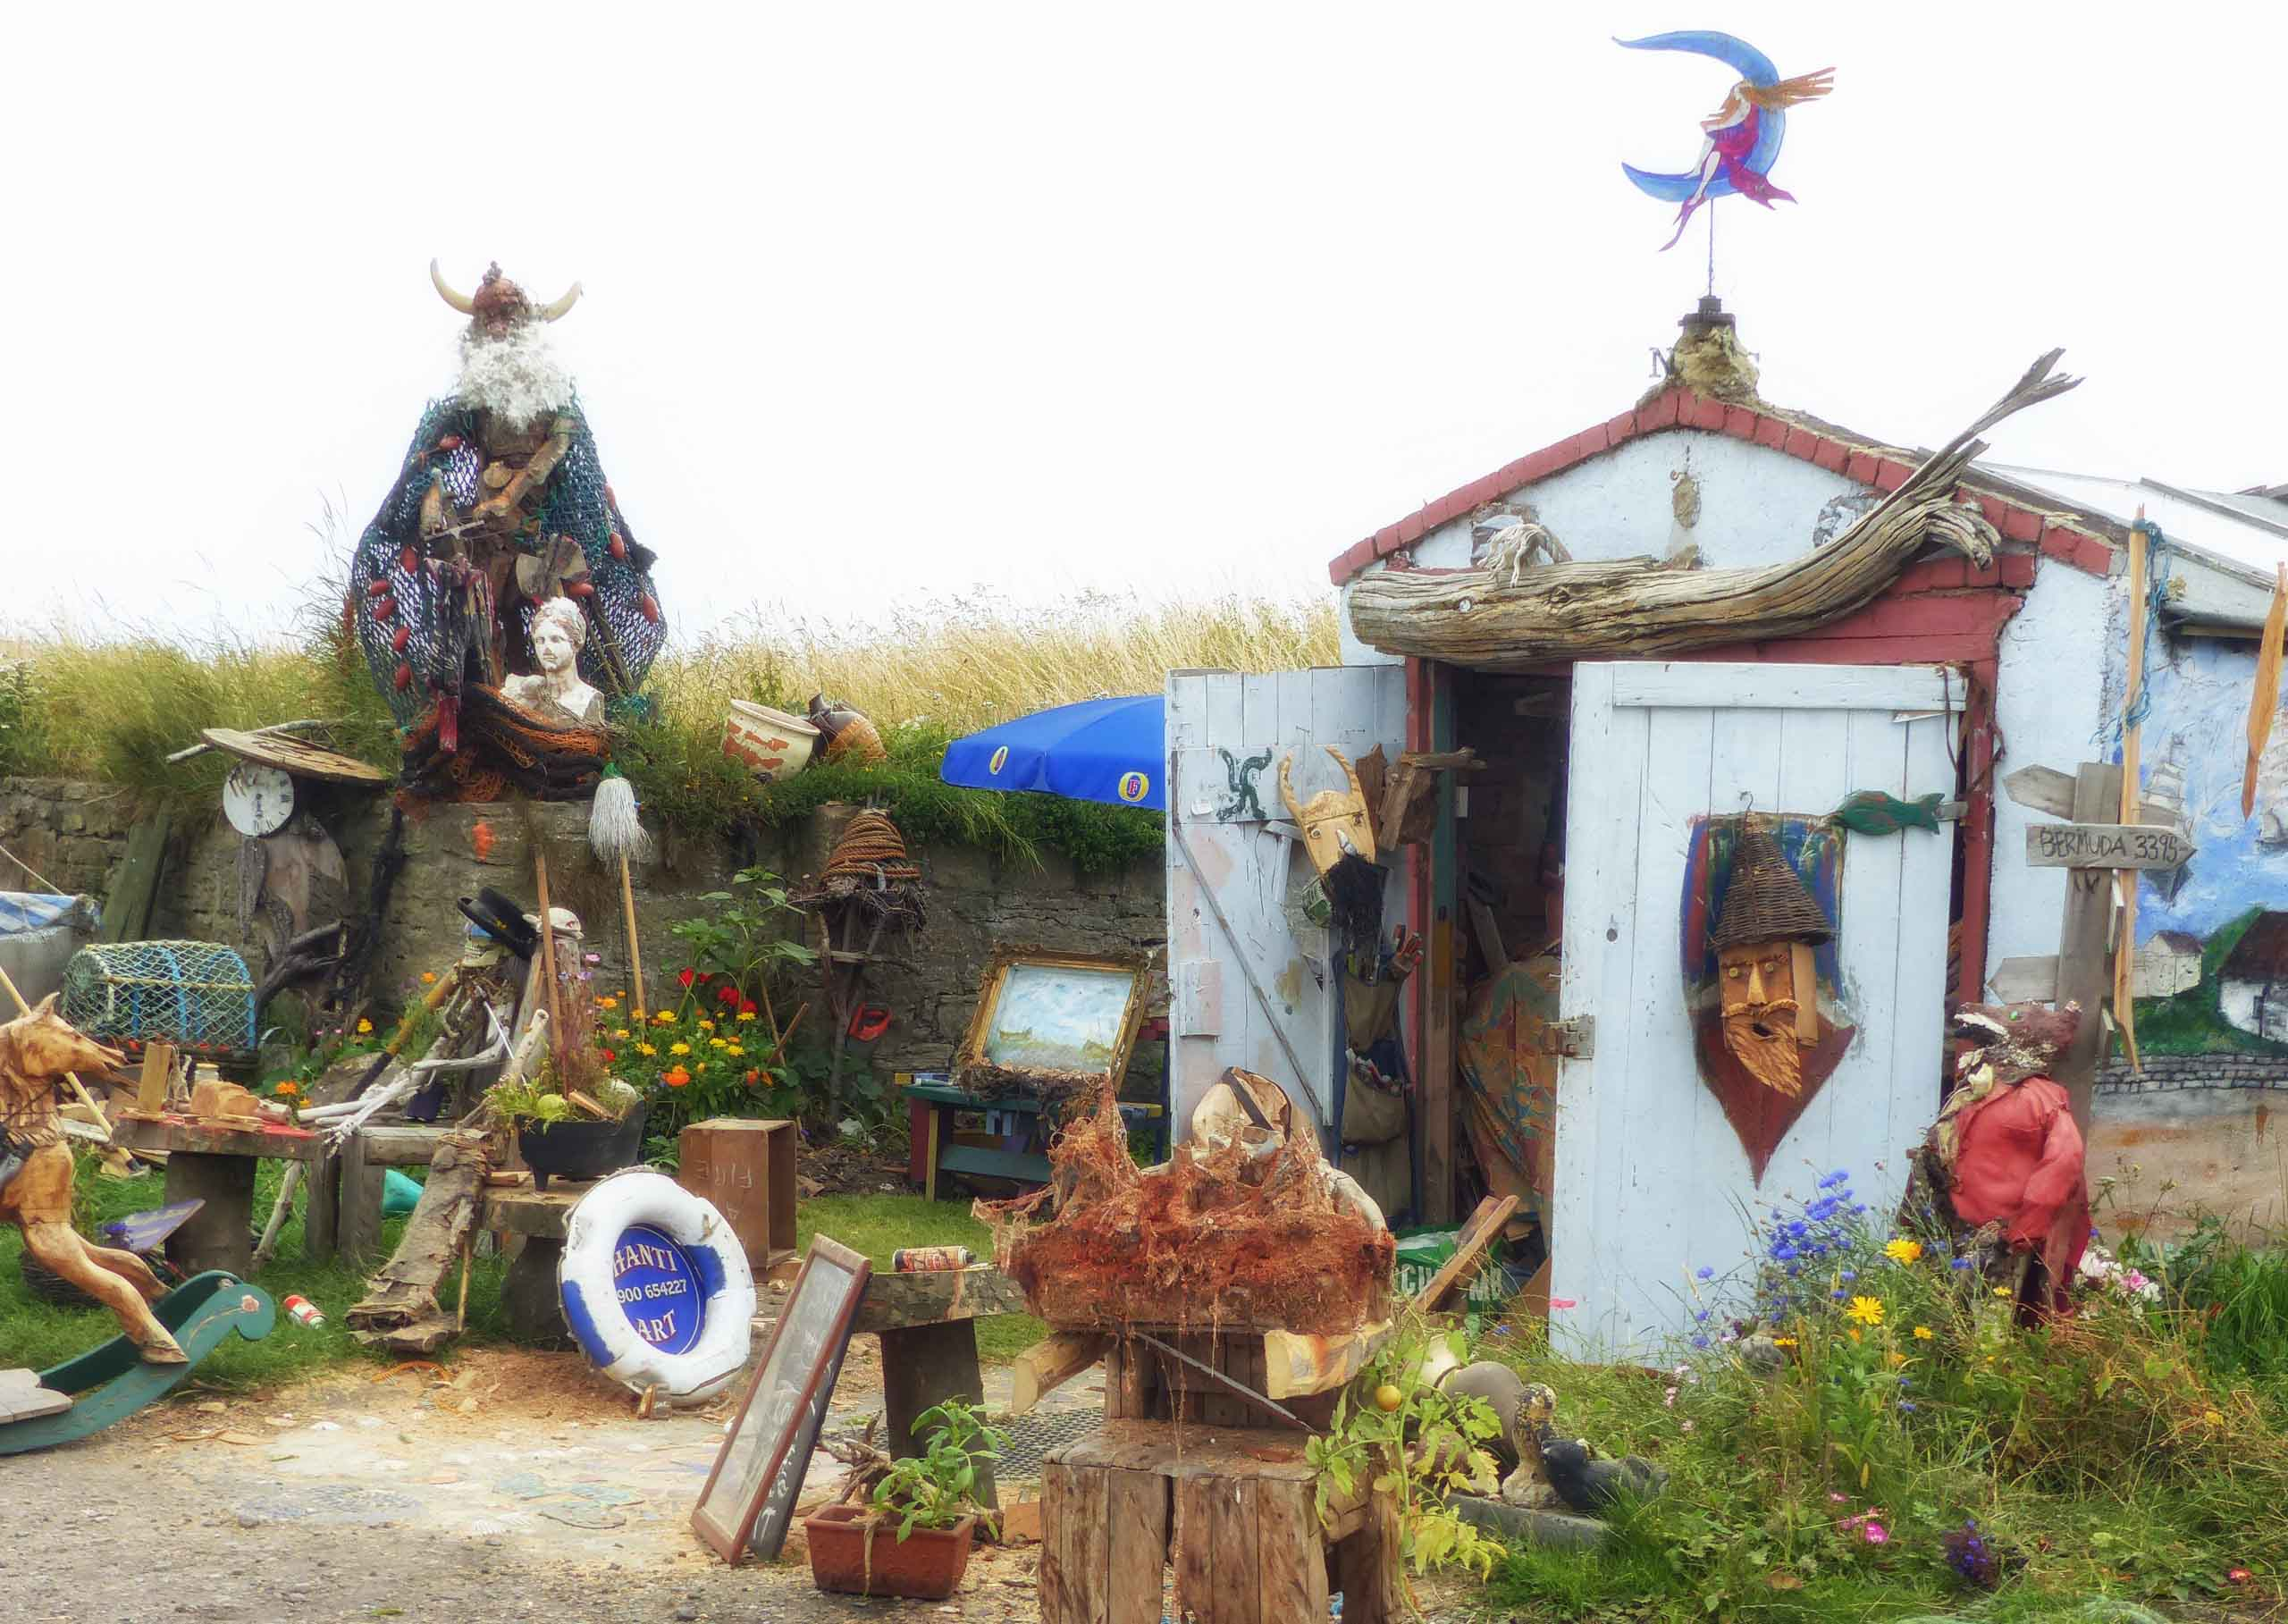 Wooden shed with bric-a-brac and carvings